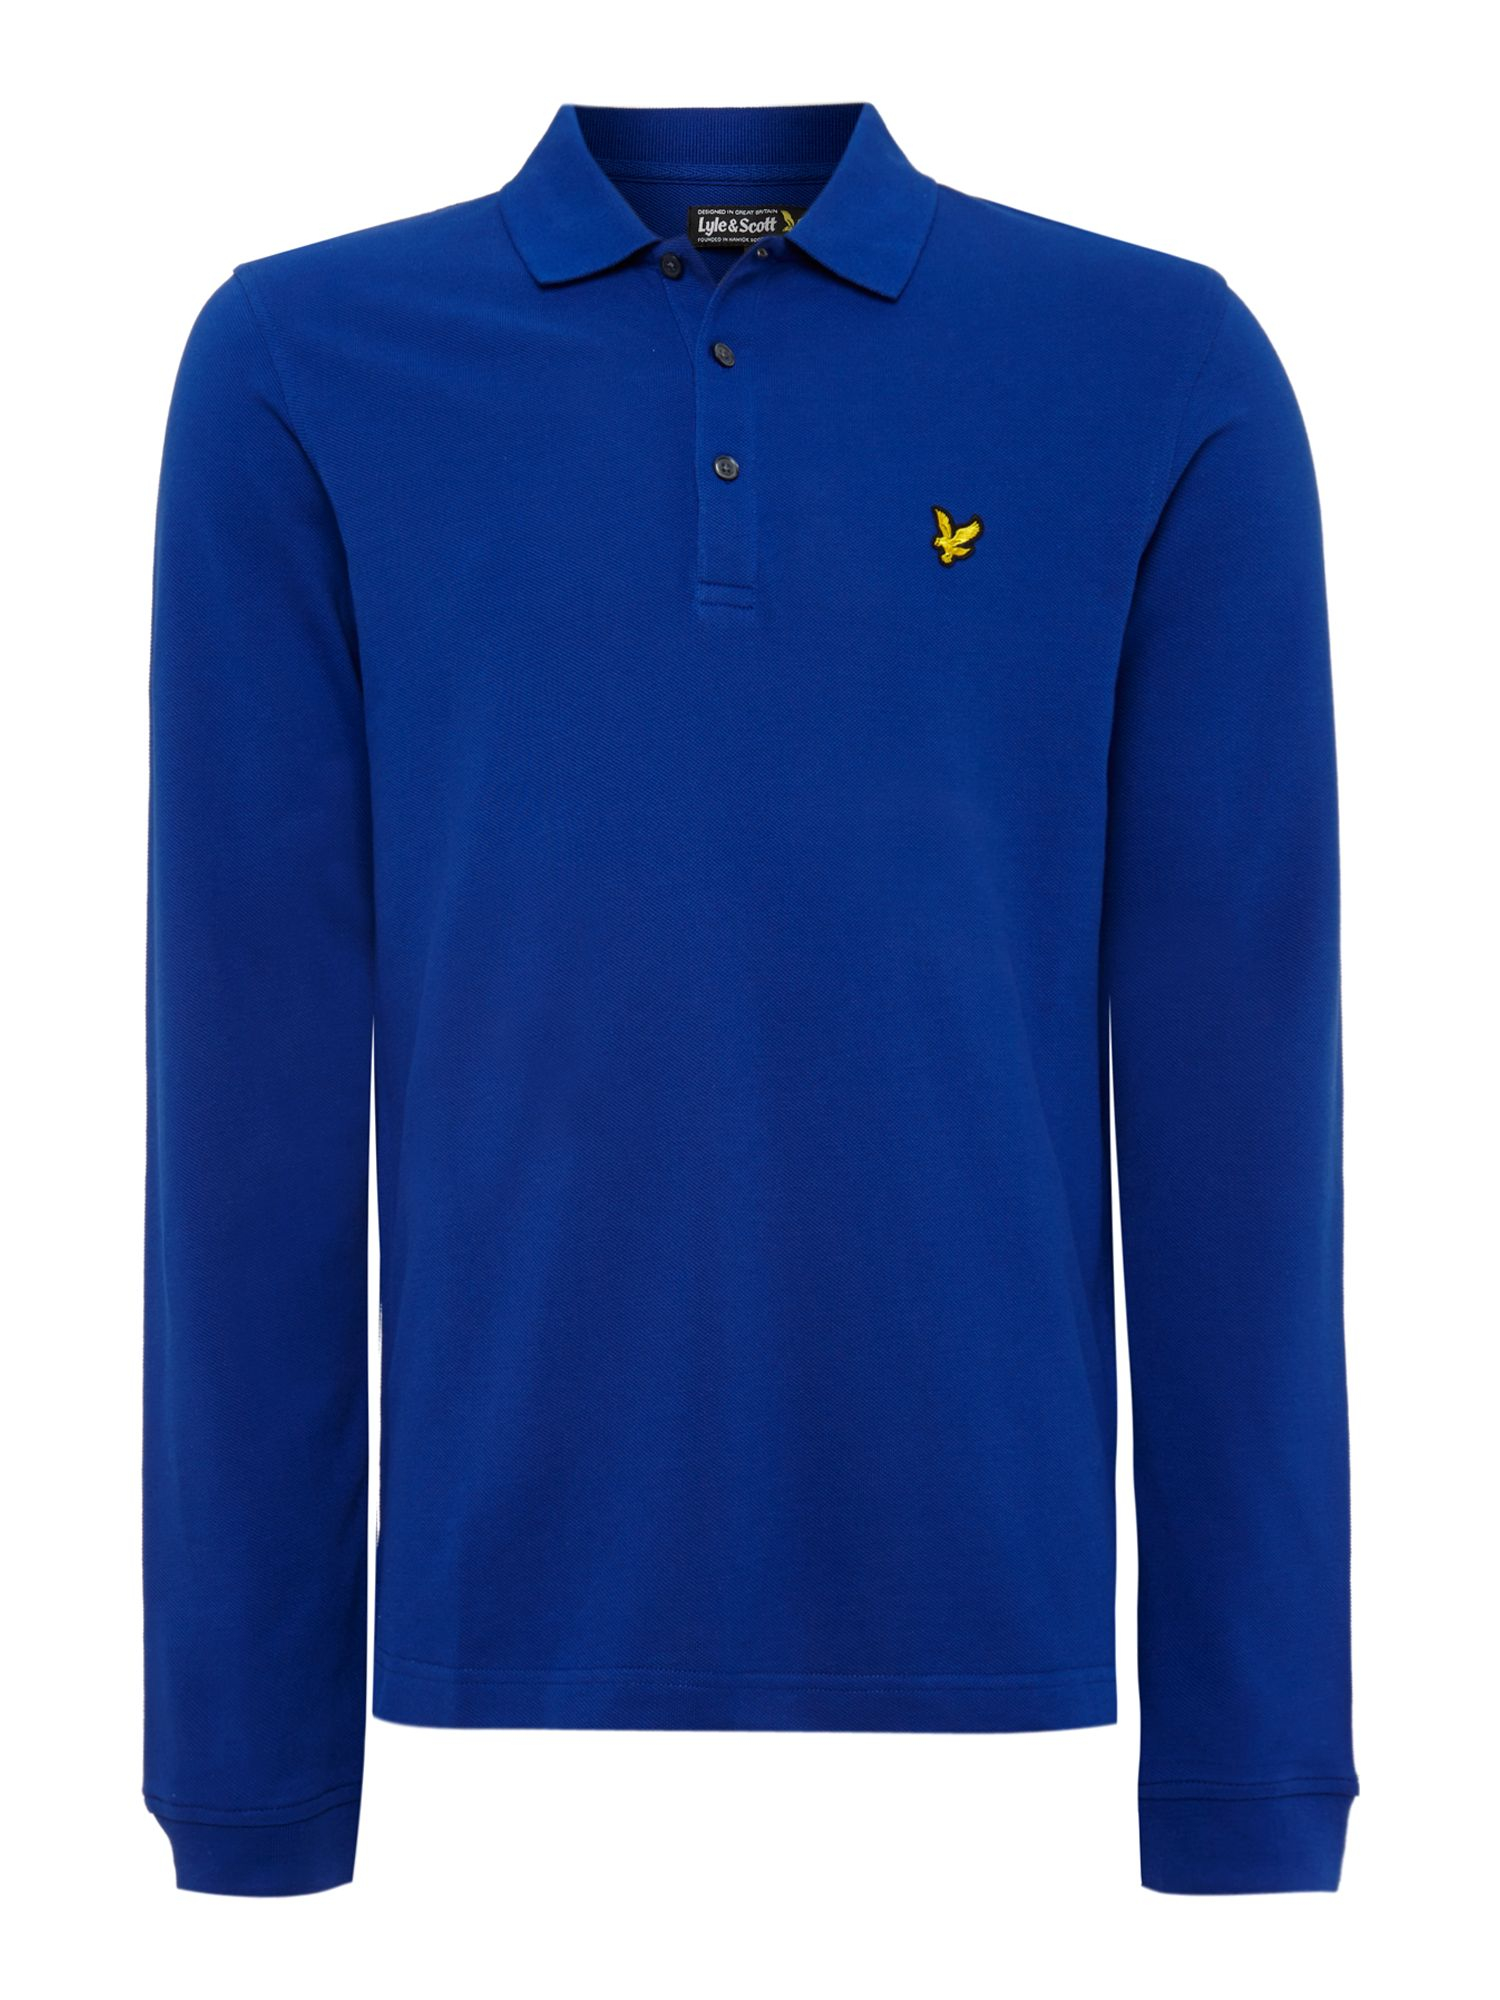 lyle scott regular fit long sleeve polo shirt in blue for men lyst. Black Bedroom Furniture Sets. Home Design Ideas